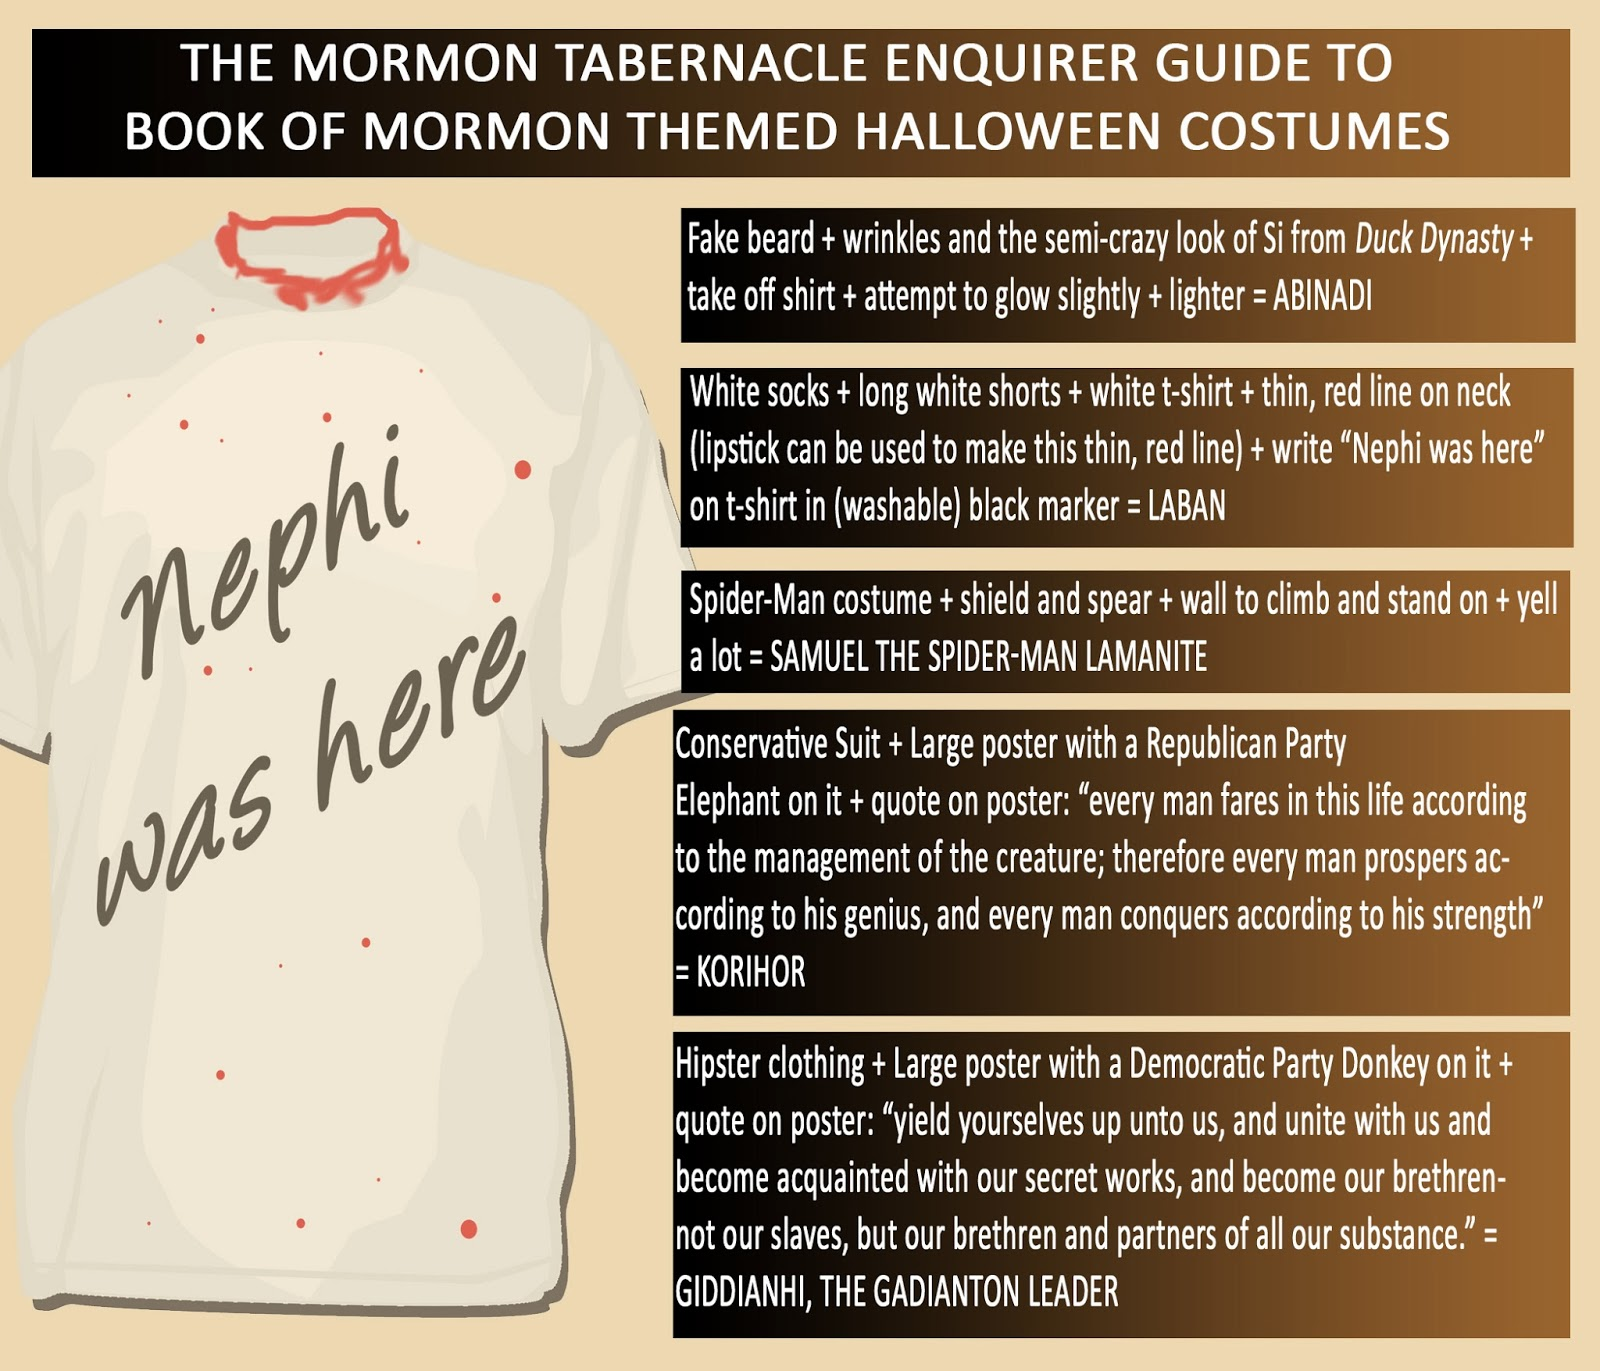 dfdbe208d MORMON TABERNACLE ENQUIRER GUIDE TO BOOK OF MORMON THEMED HALLOWEEN COSTUMES